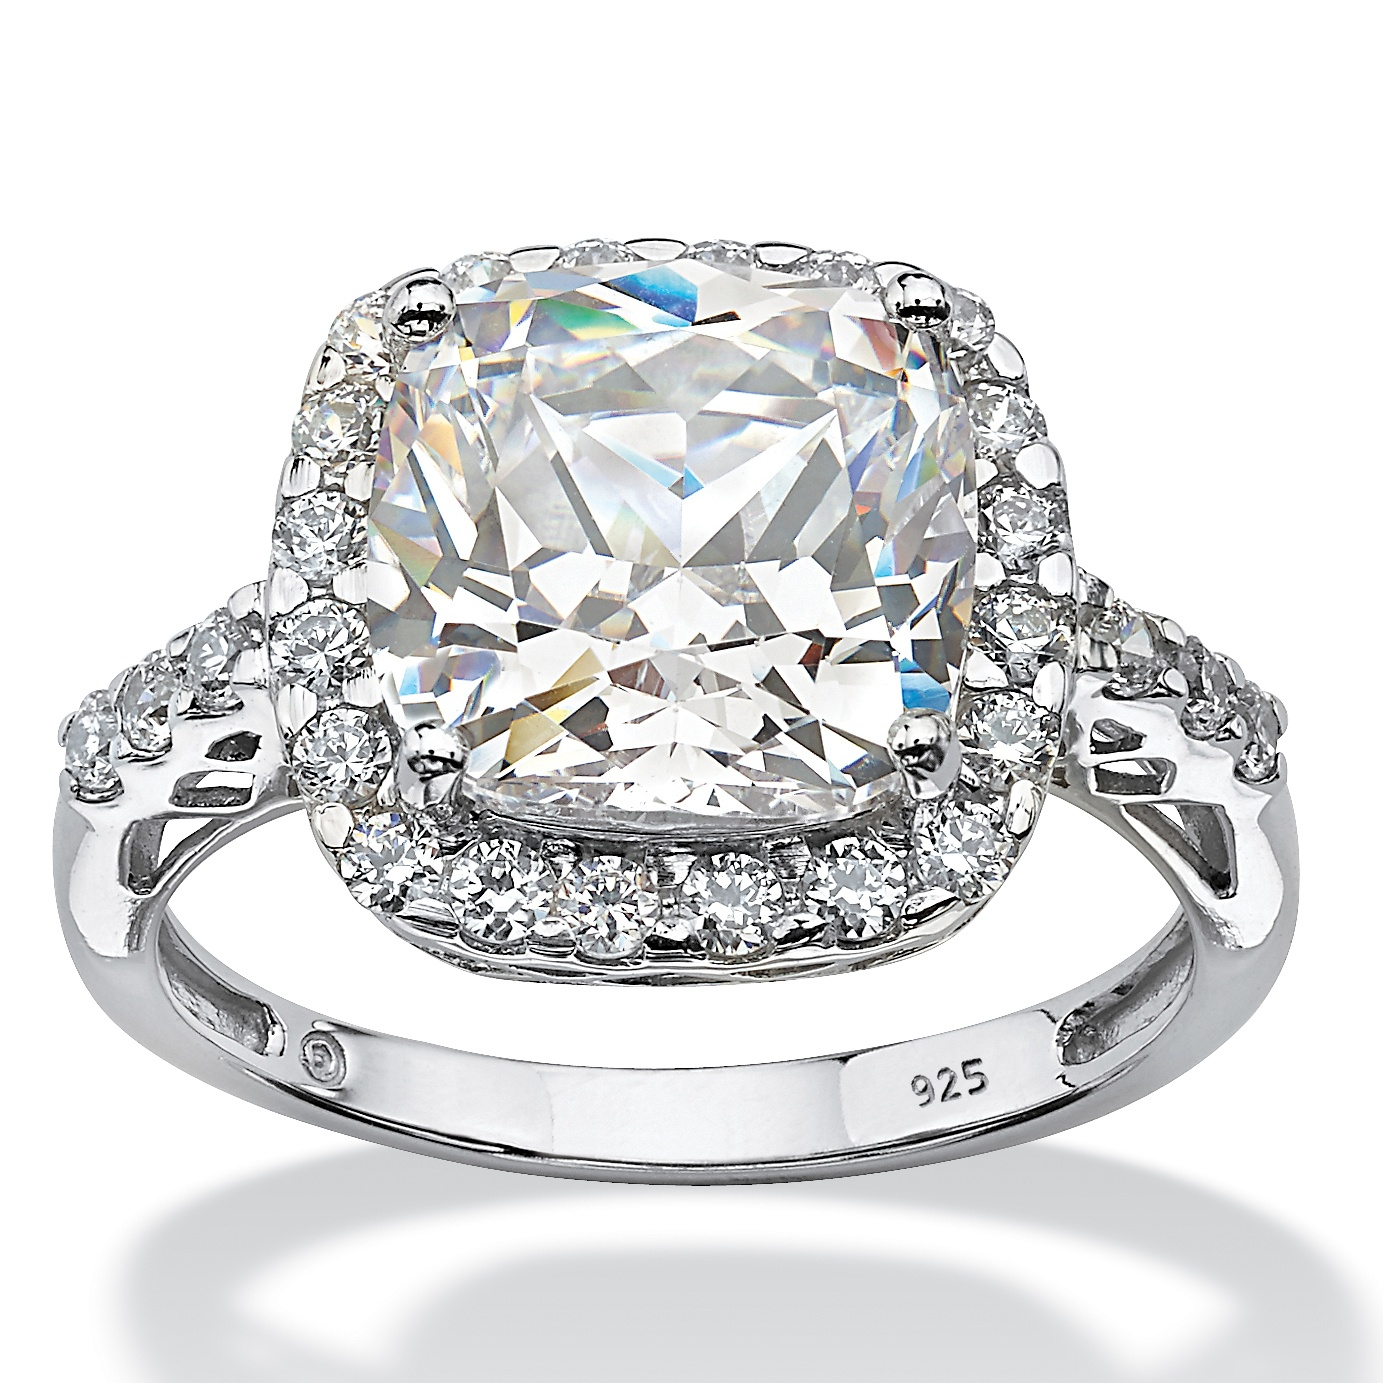 Cushion-Cut Created White Sapphire Halo Engagement Ring 5.78 TCW in Platinum over Sterling Silver by PalmBeach Jewelry